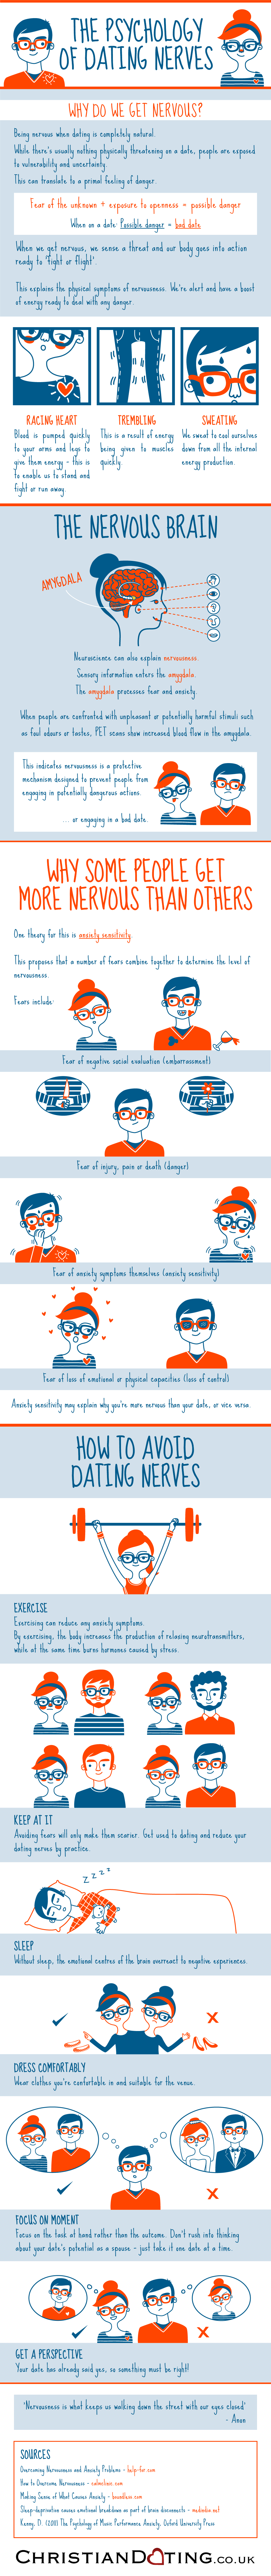 the-psychology-of-dating-nerves-infographic_5241b28beb236